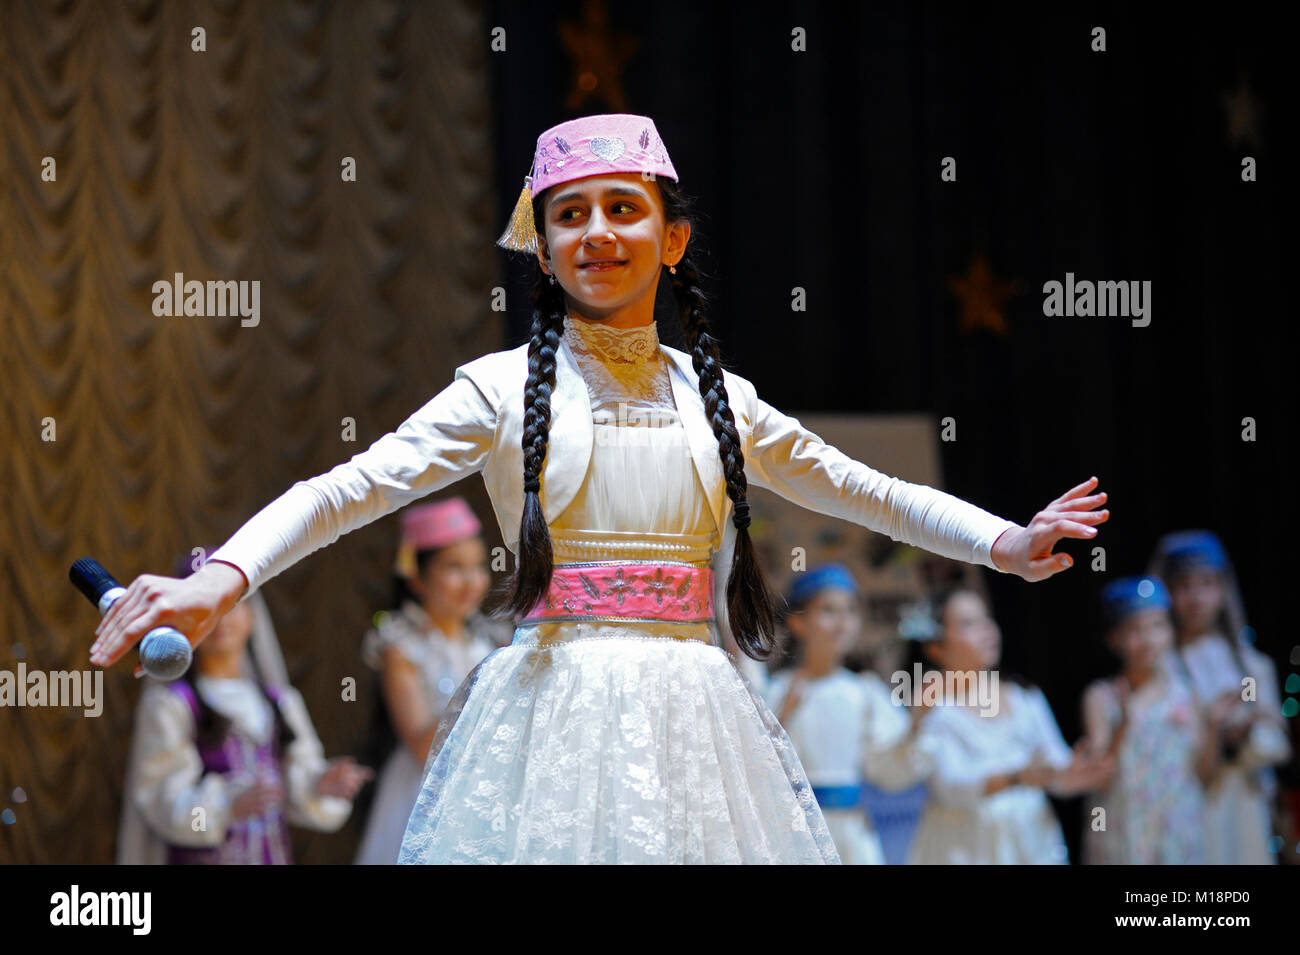 "Crimean tatar baby girl in native dress performing native song on stage. Concert ""Winter tale"". December 24, 2017. - Stock Image"